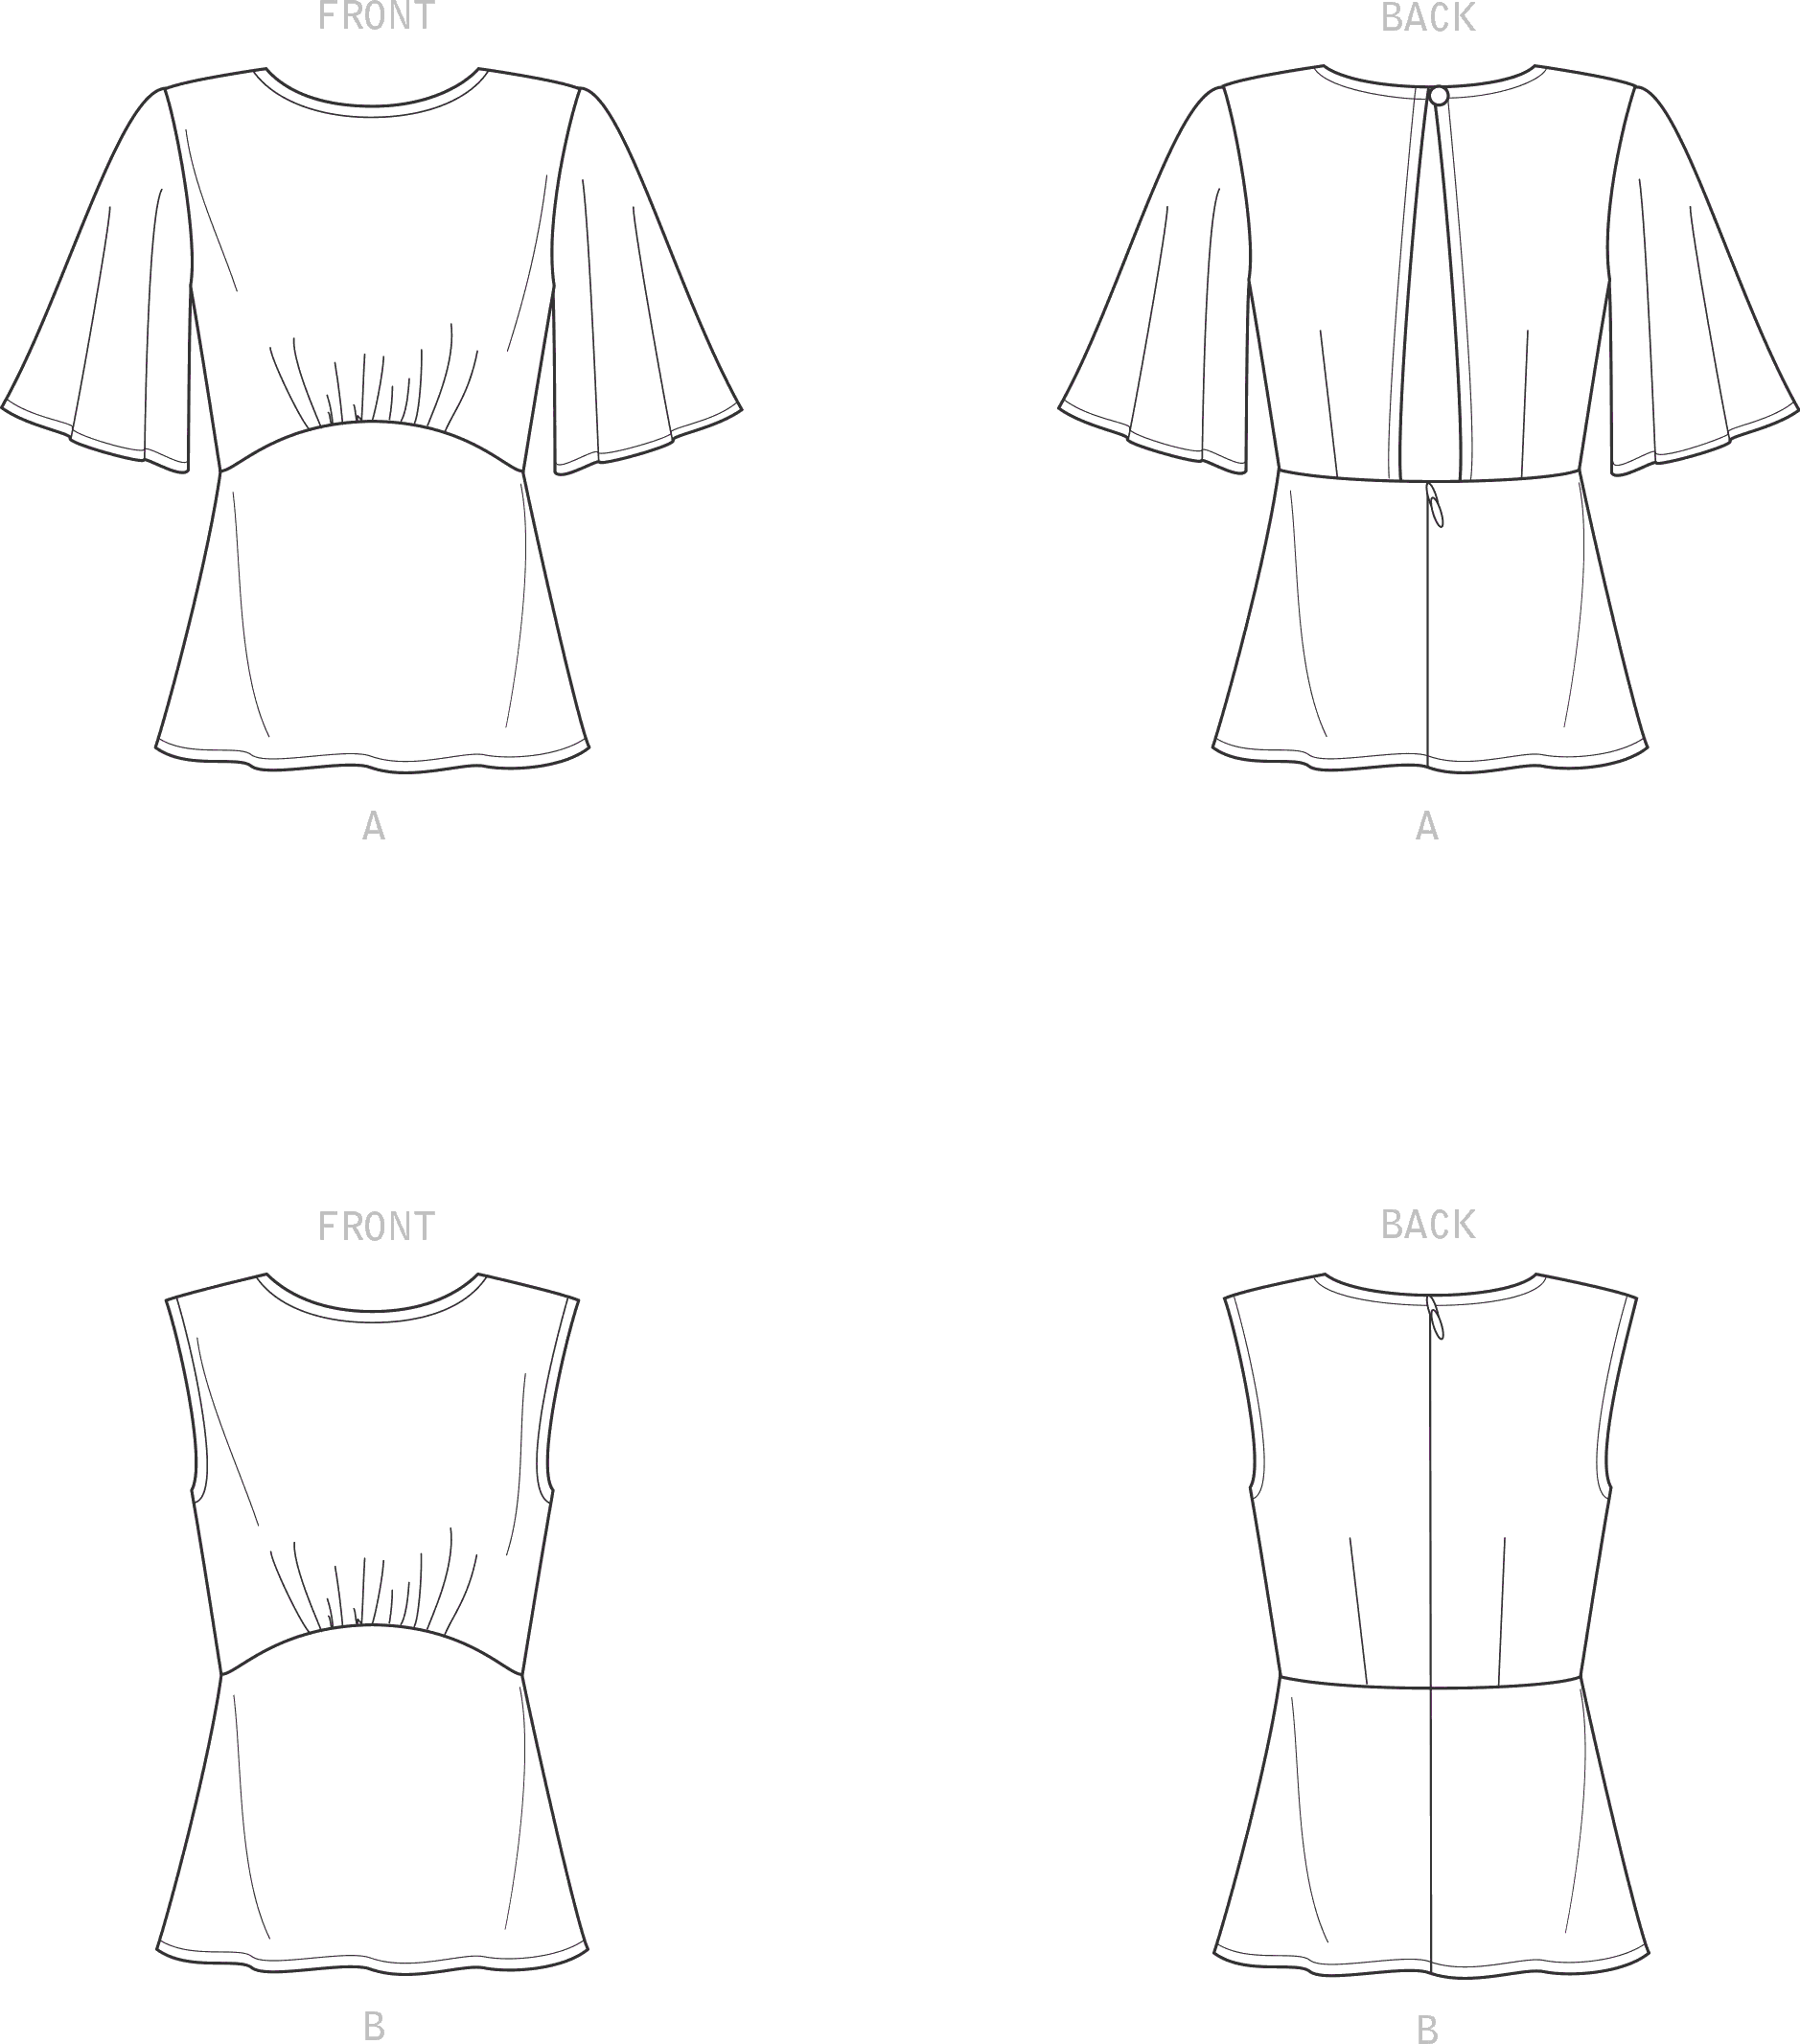 New Look Sewing Pattern N6656 Misses Top With Optional Black Opening and Flared Sleeves 6656 Line Art From Patternsandplains.com